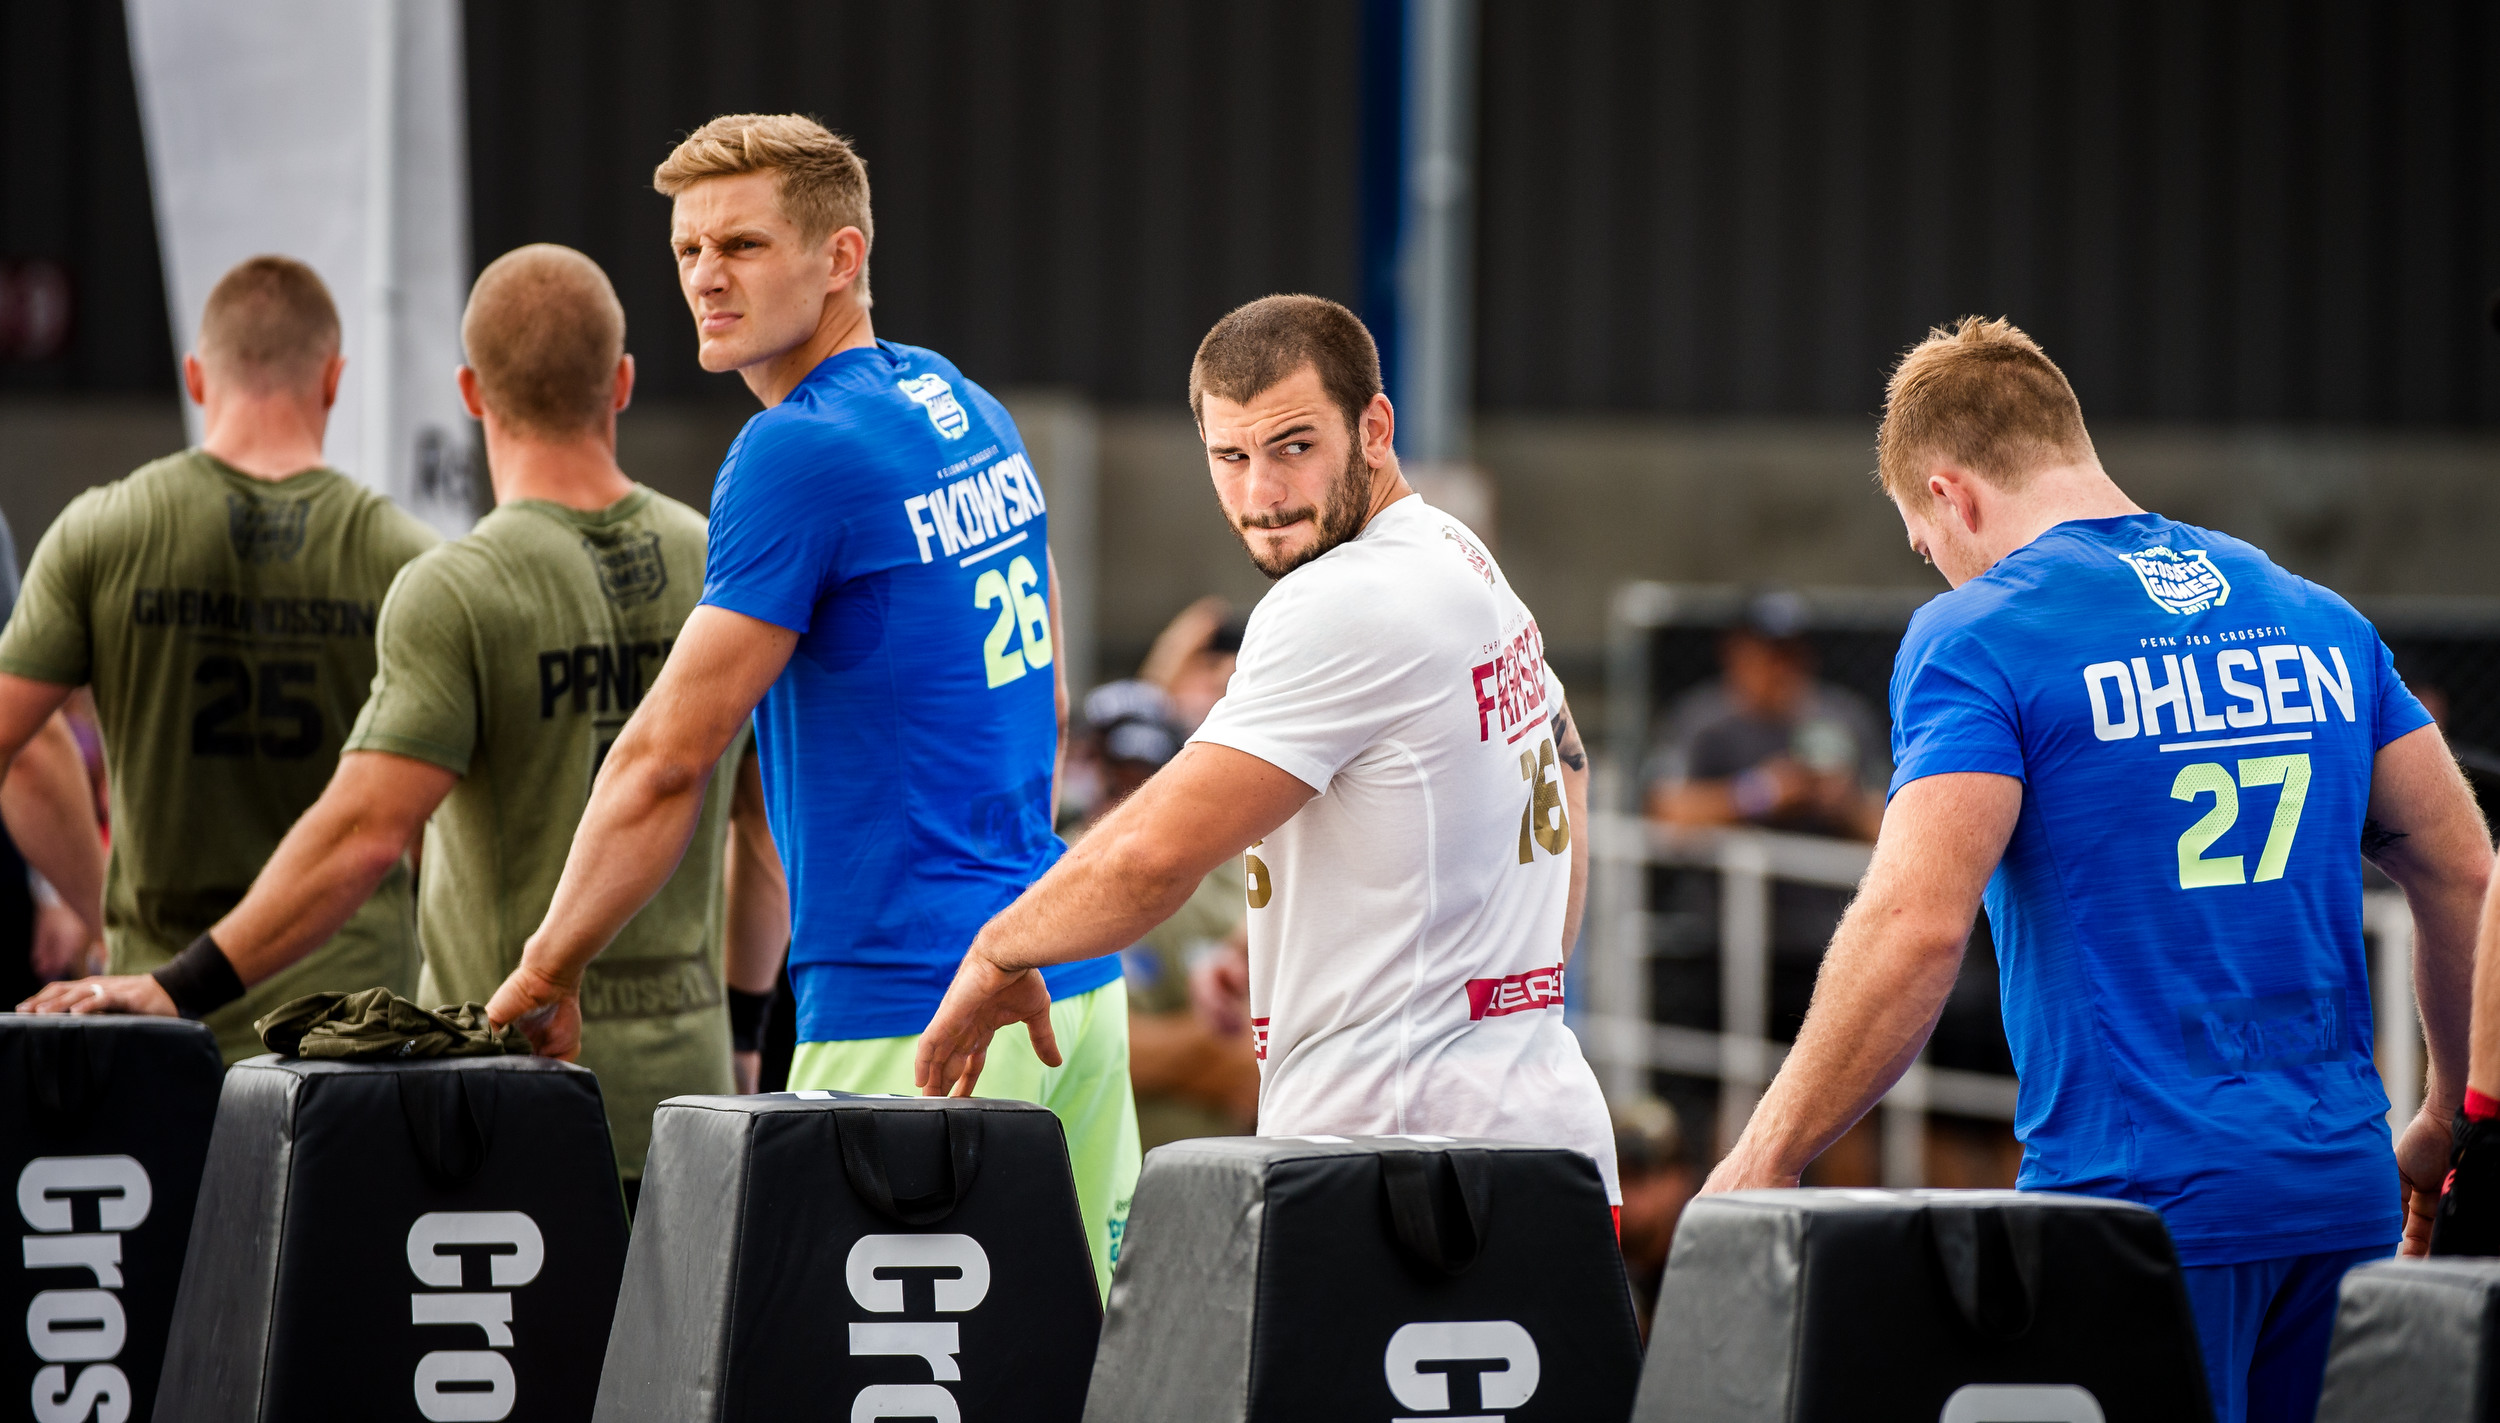 Mathew Fraser looks back before the start of the event at the CrossFit Games